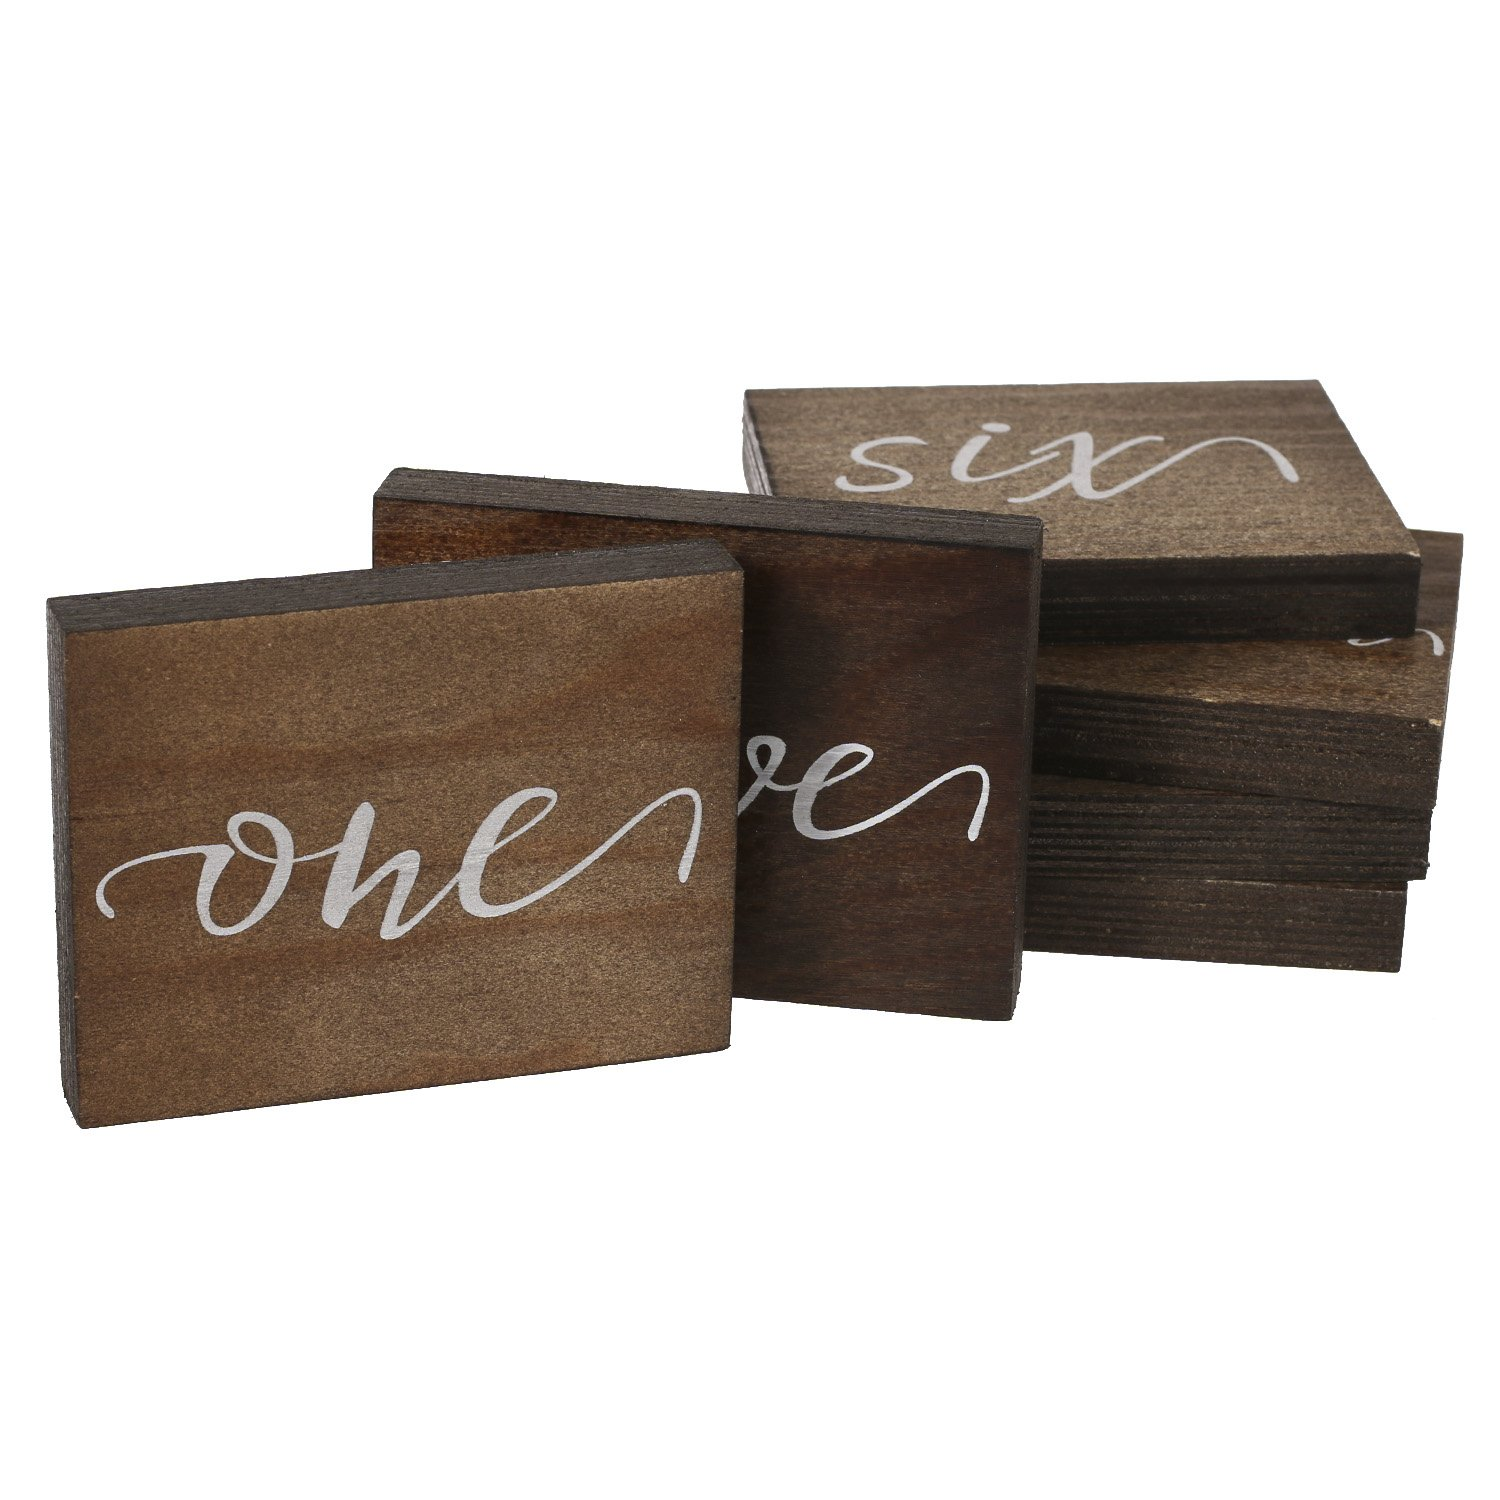 Ling's moment Rustic Elegant Calligraphy Wooden Table Numbers Outdoor Romantic Bohemia Wedding, Annual Dinner Catering Decoration, 1 to 15, Pack of 15